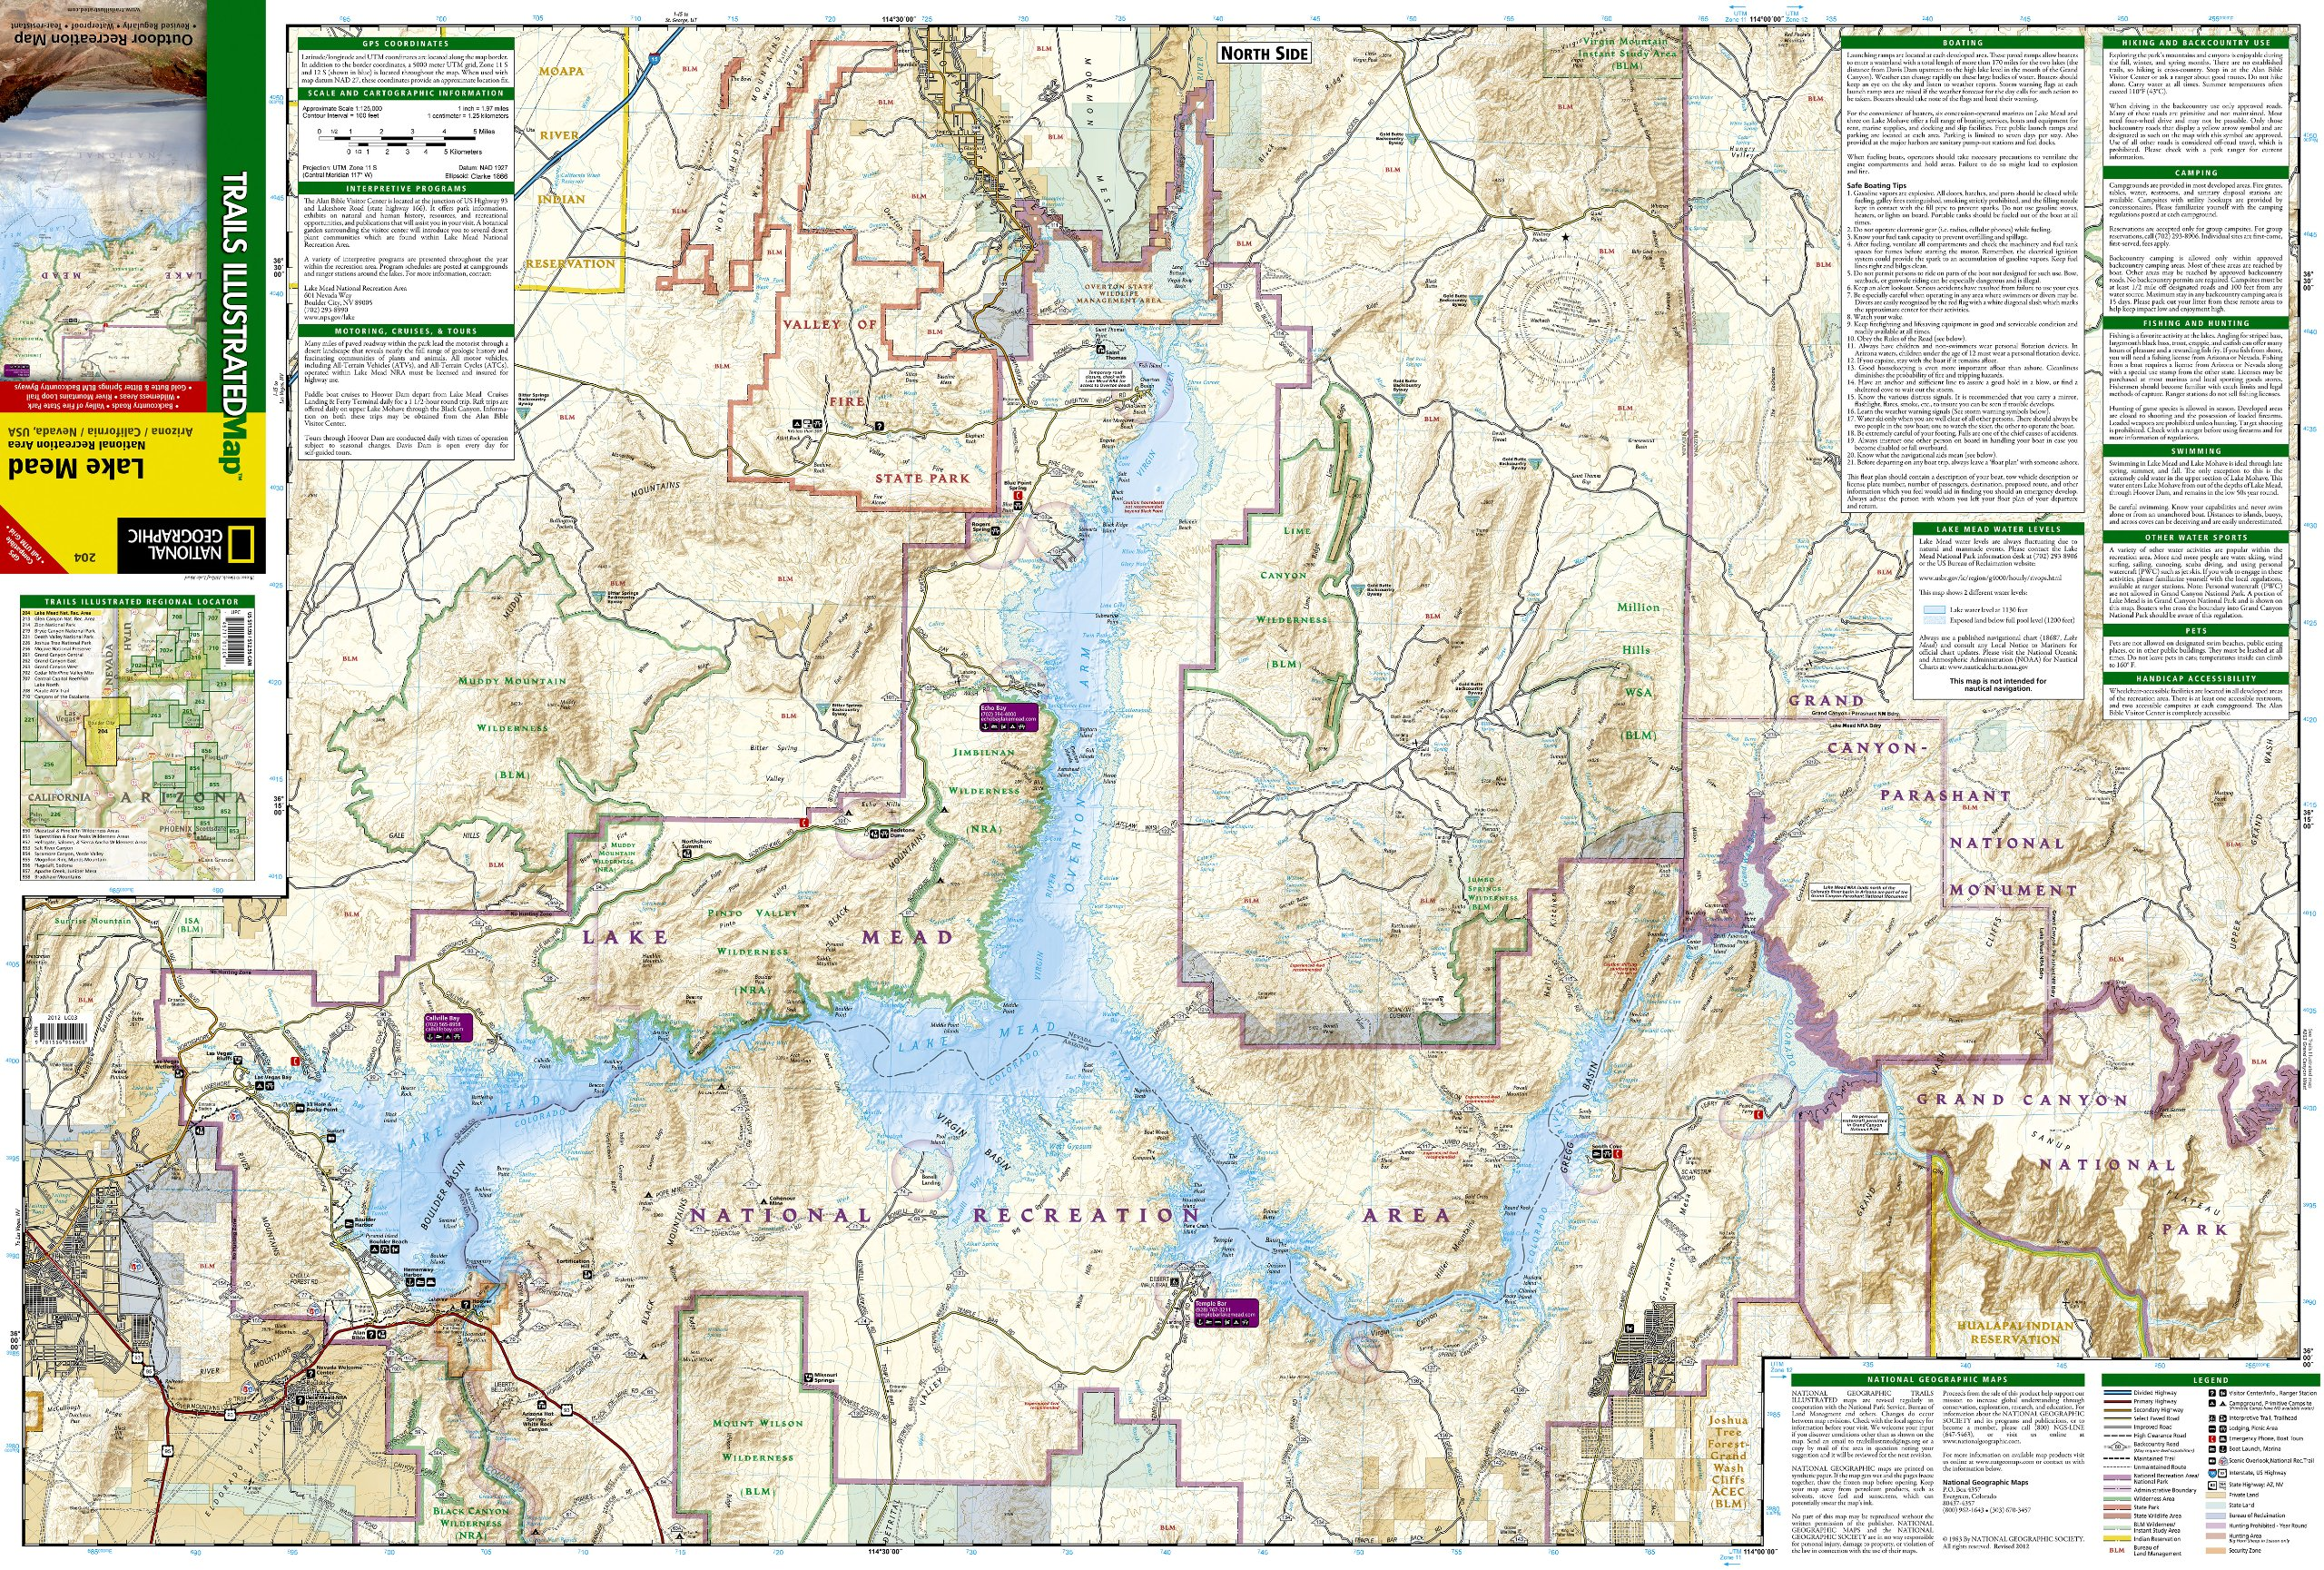 lake mead national recreation area national geographic trails